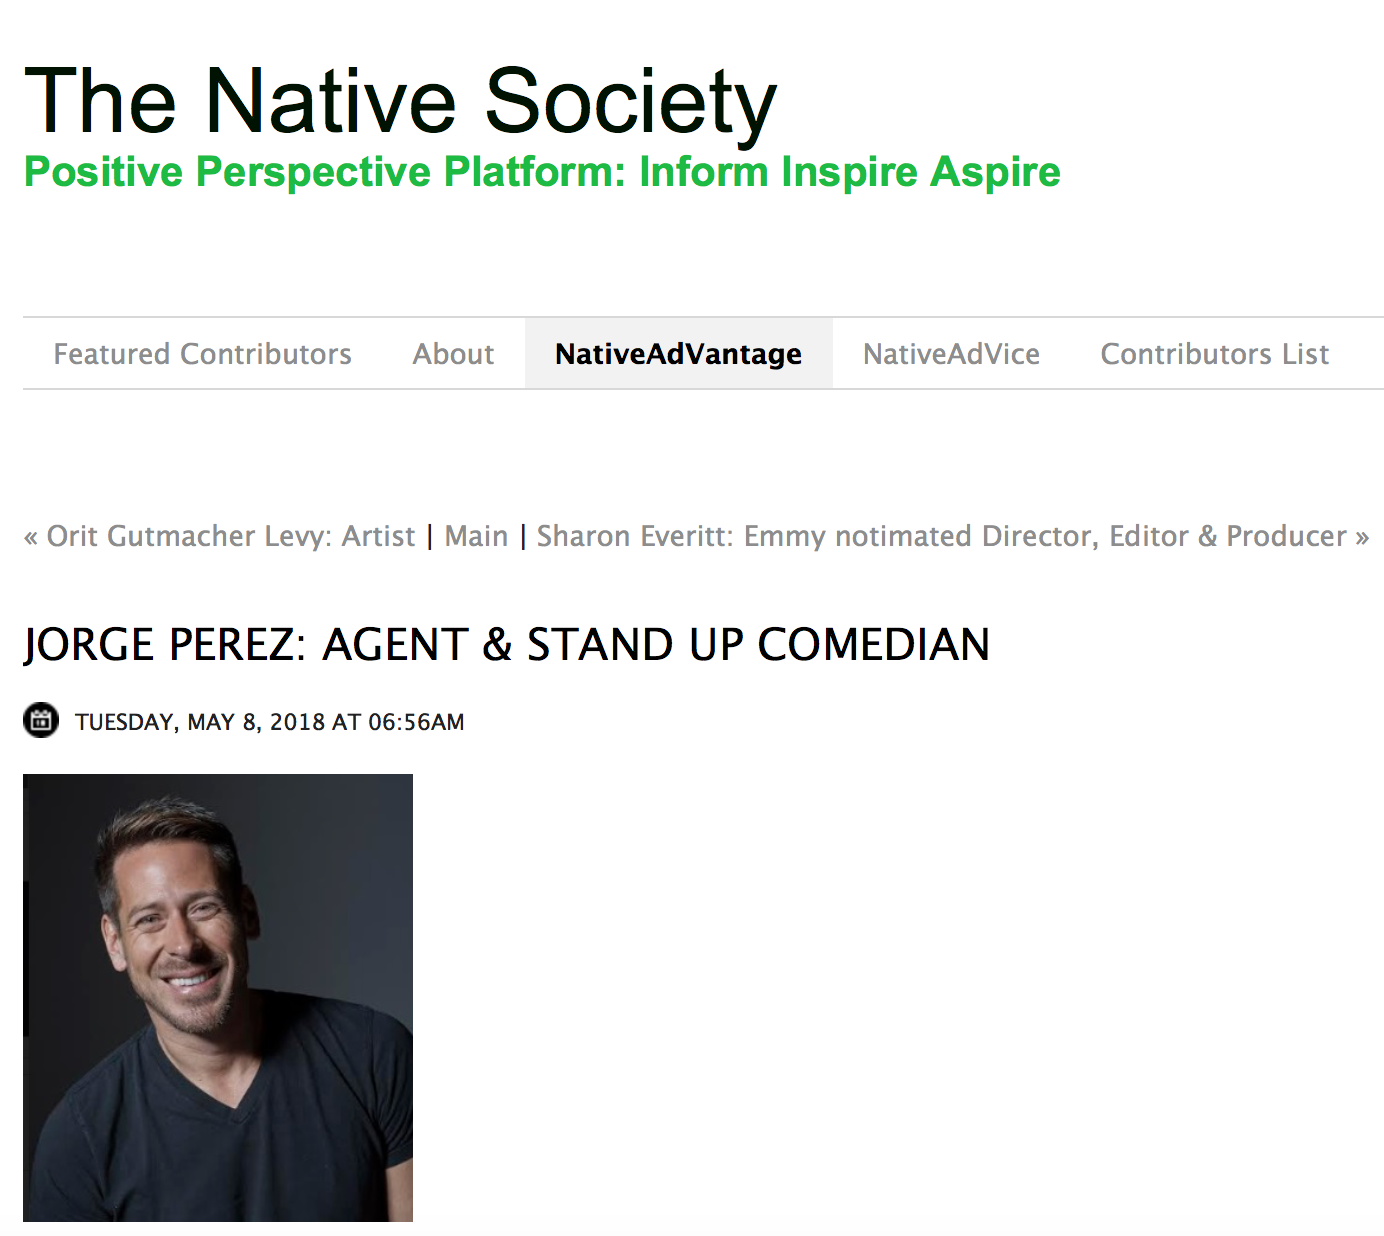 JORGE PEREZ  FOR THE NATIVE SOCIETY